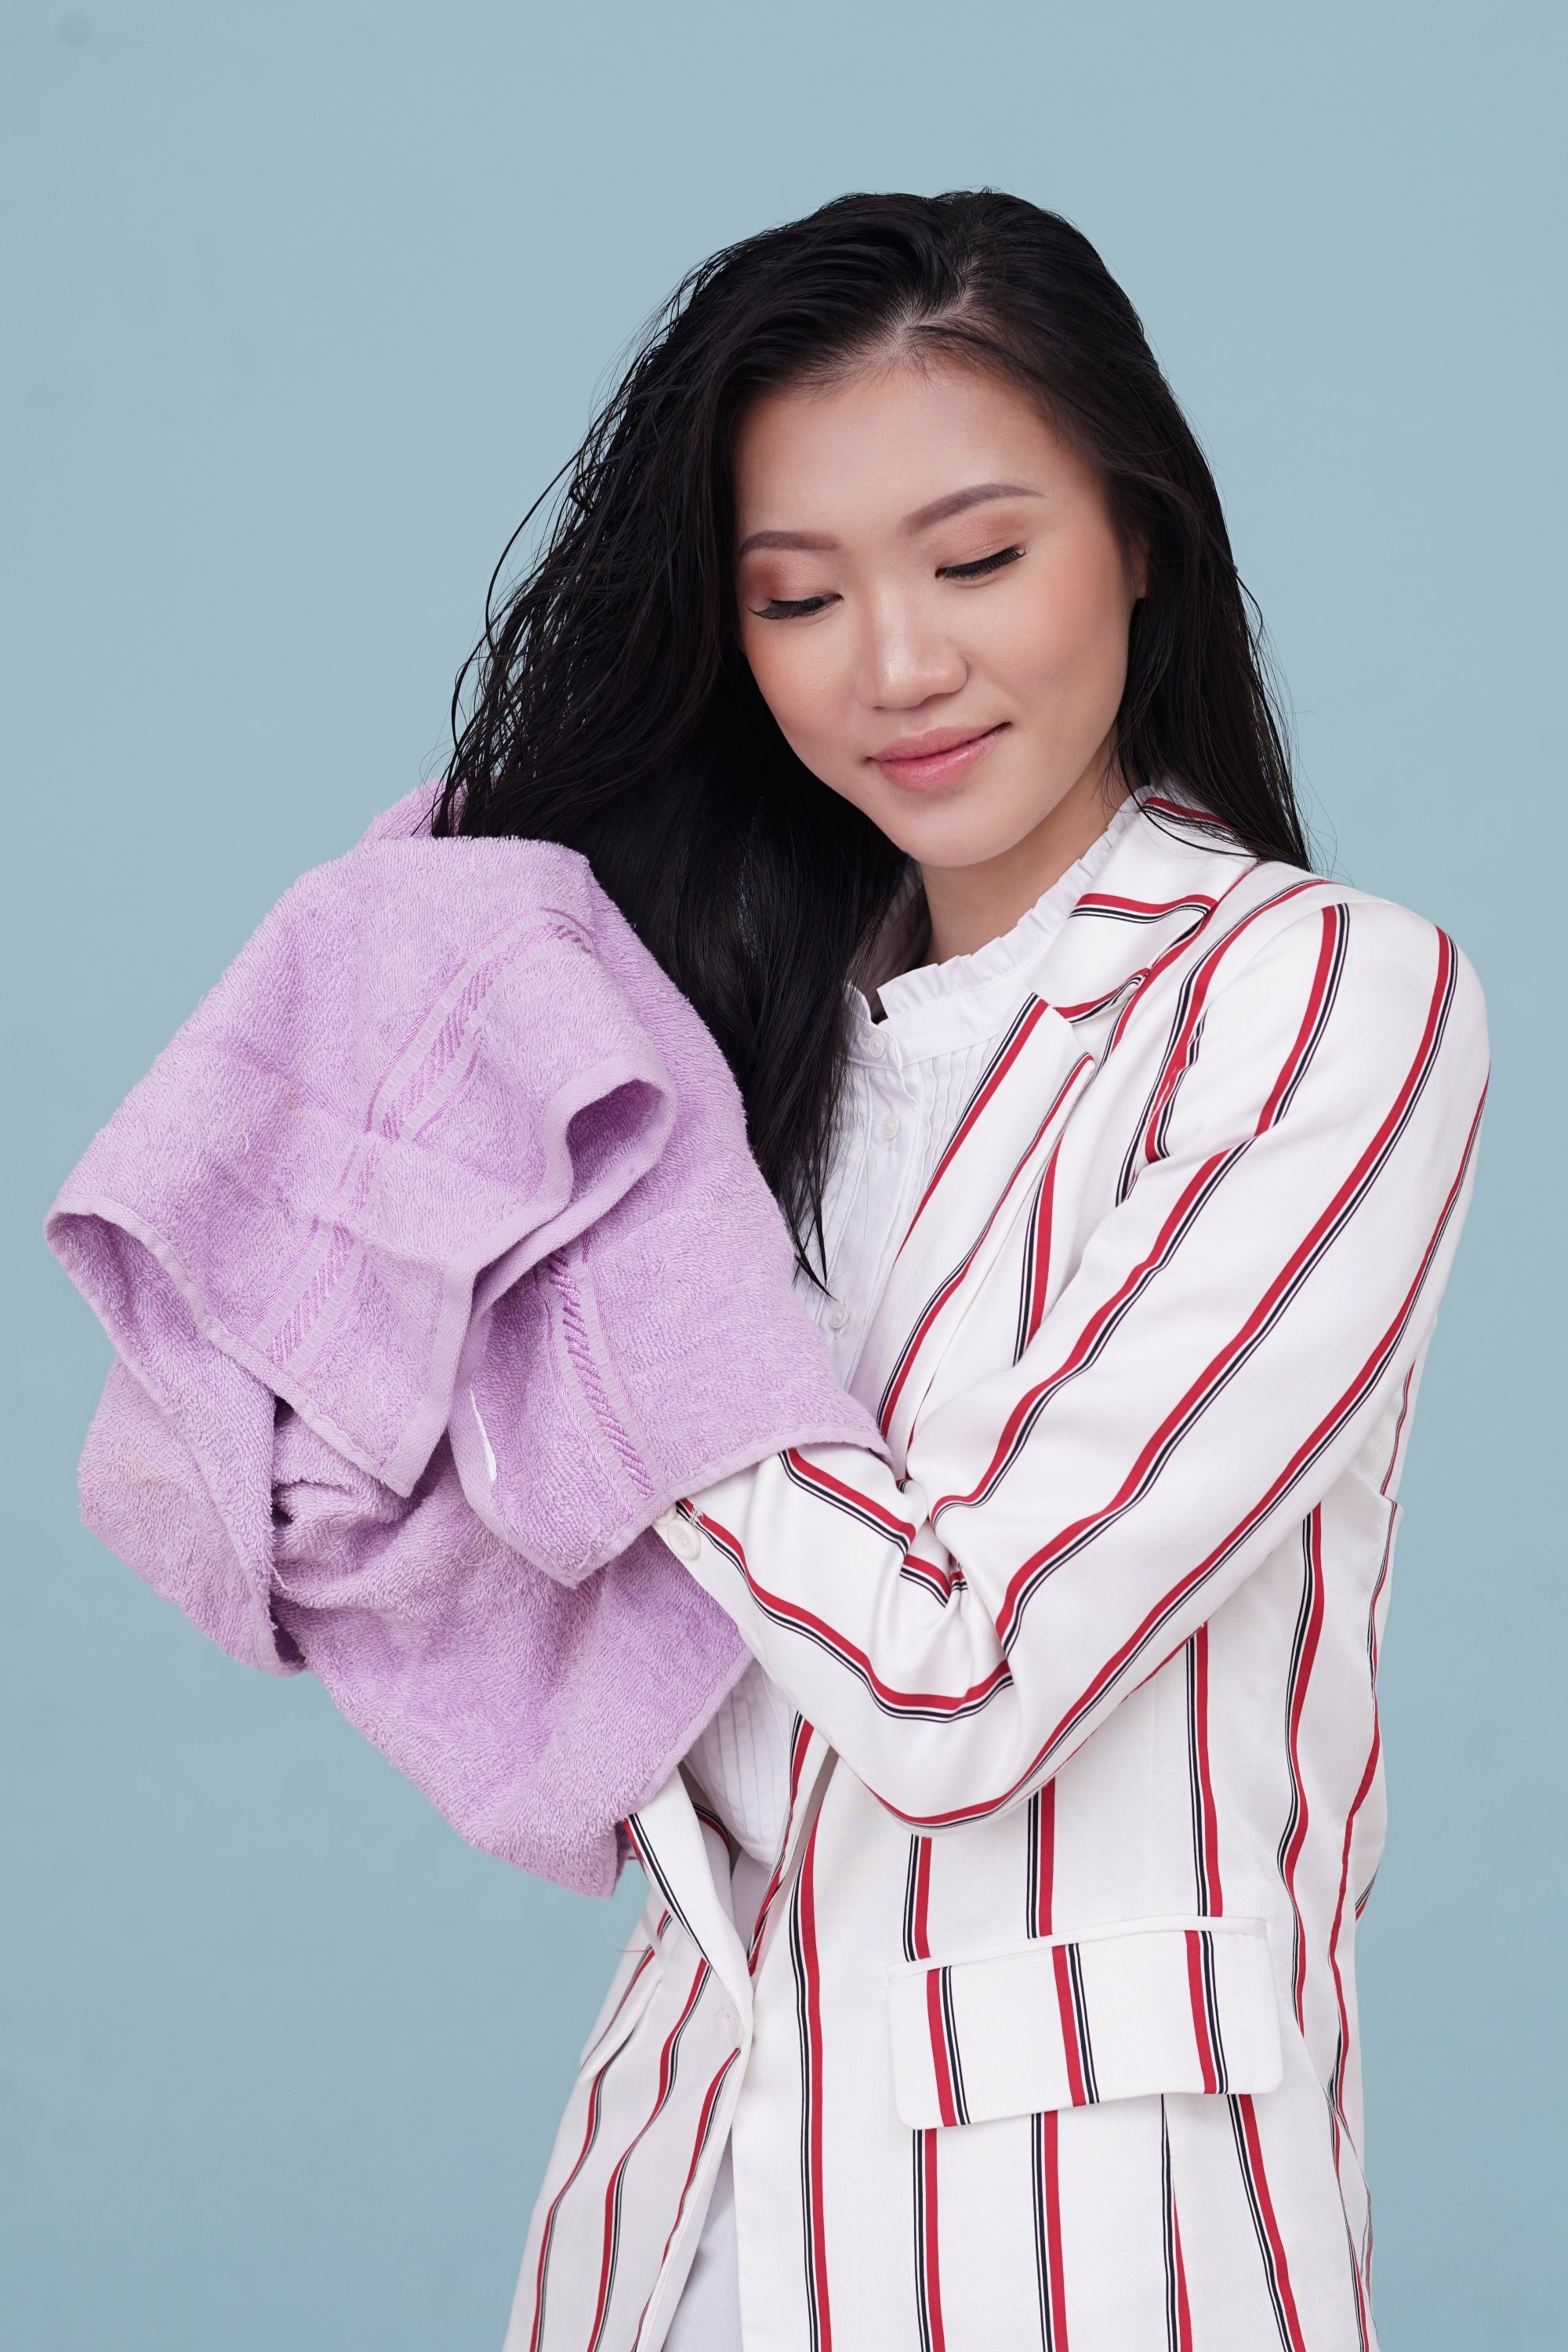 Brush your hair the right way: Asian woman towel drying her long dark hair